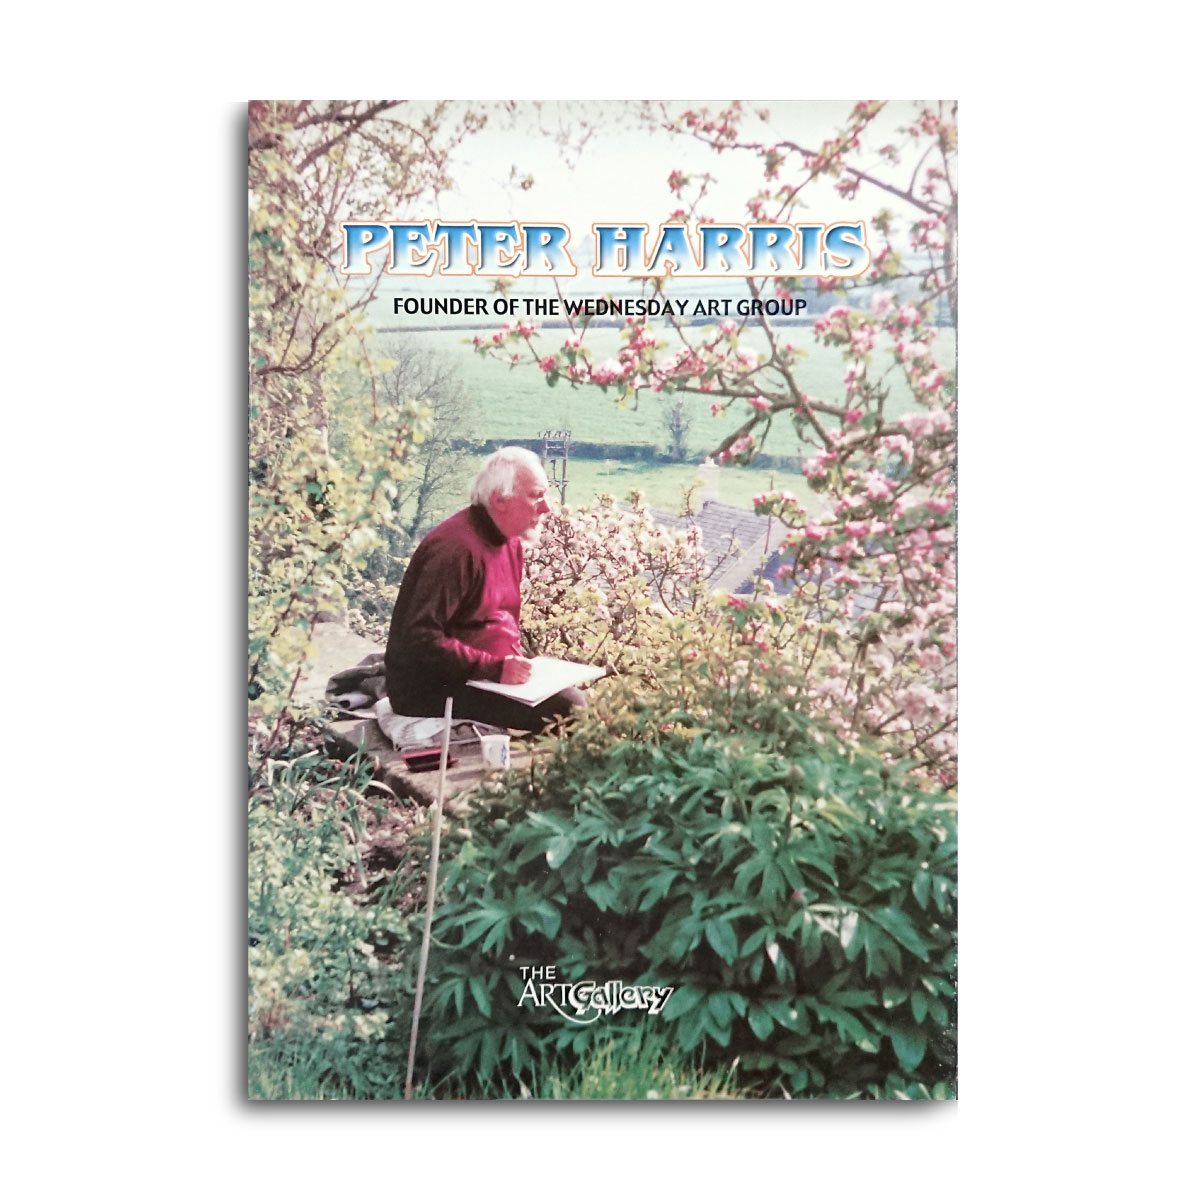 Peter Harris - Founder of The Wednesday Art Group